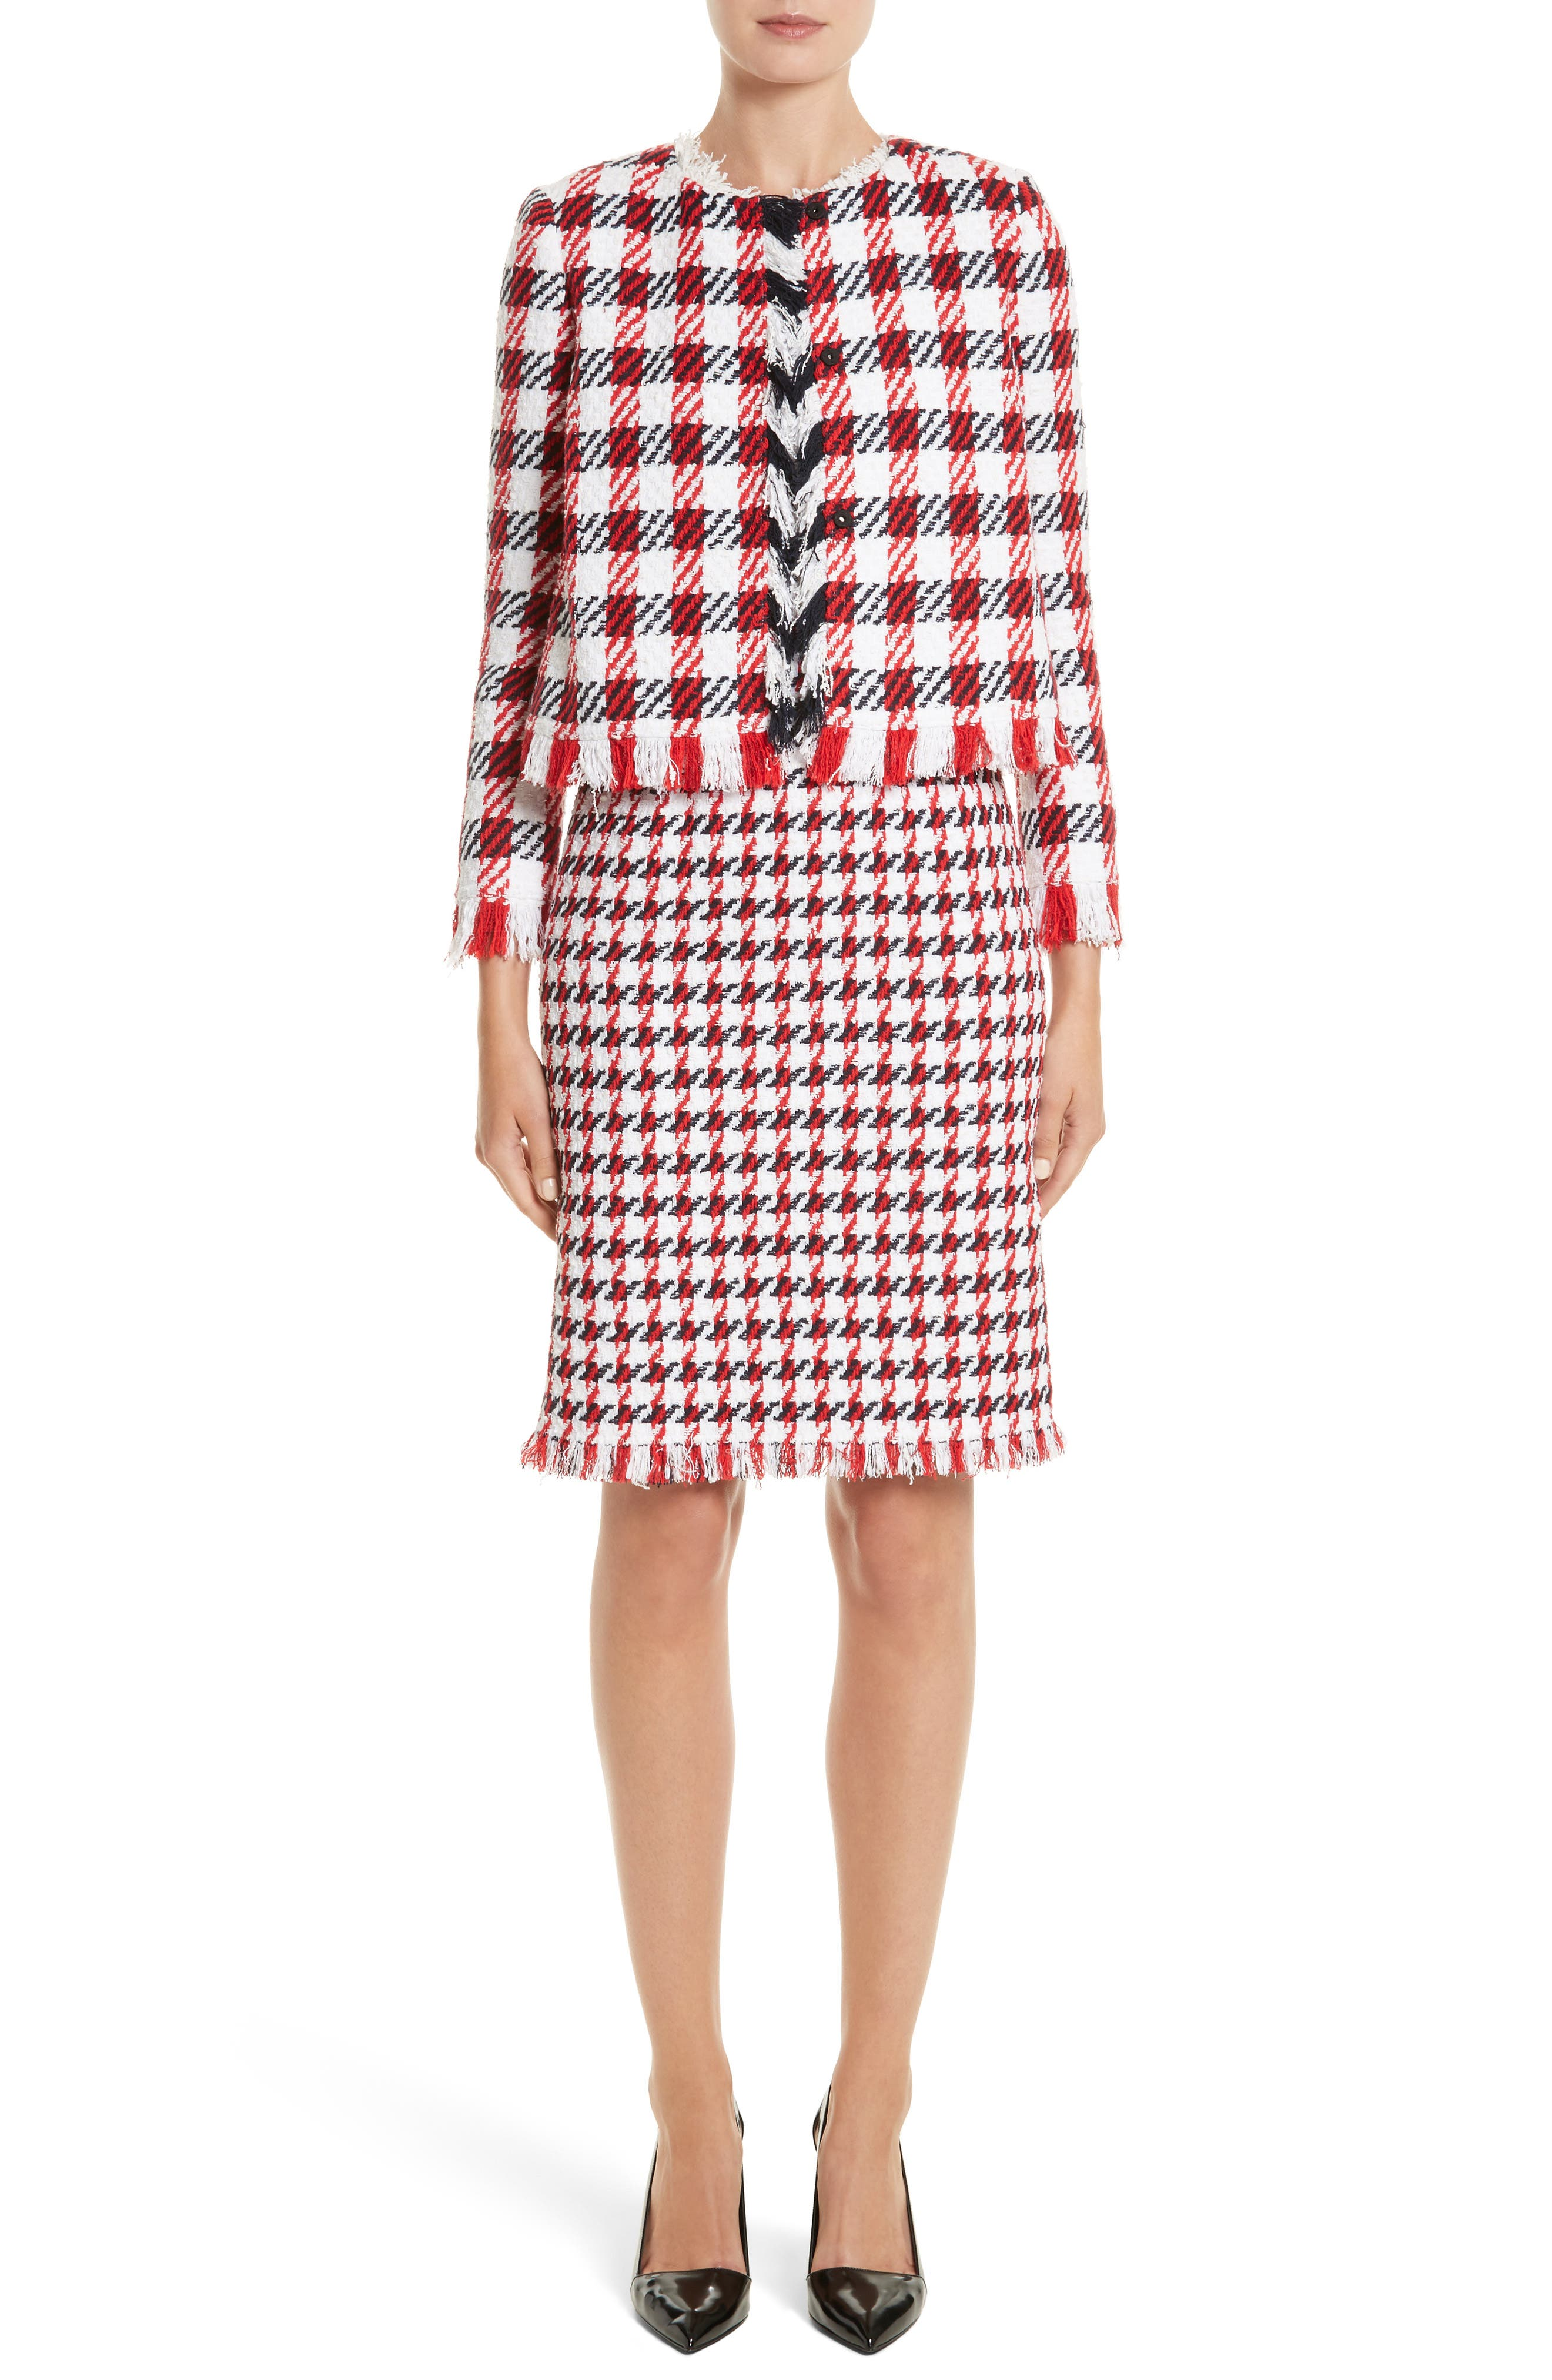 Bicolor Houndstooth Tweed Dress,                             Alternate thumbnail 7, color,